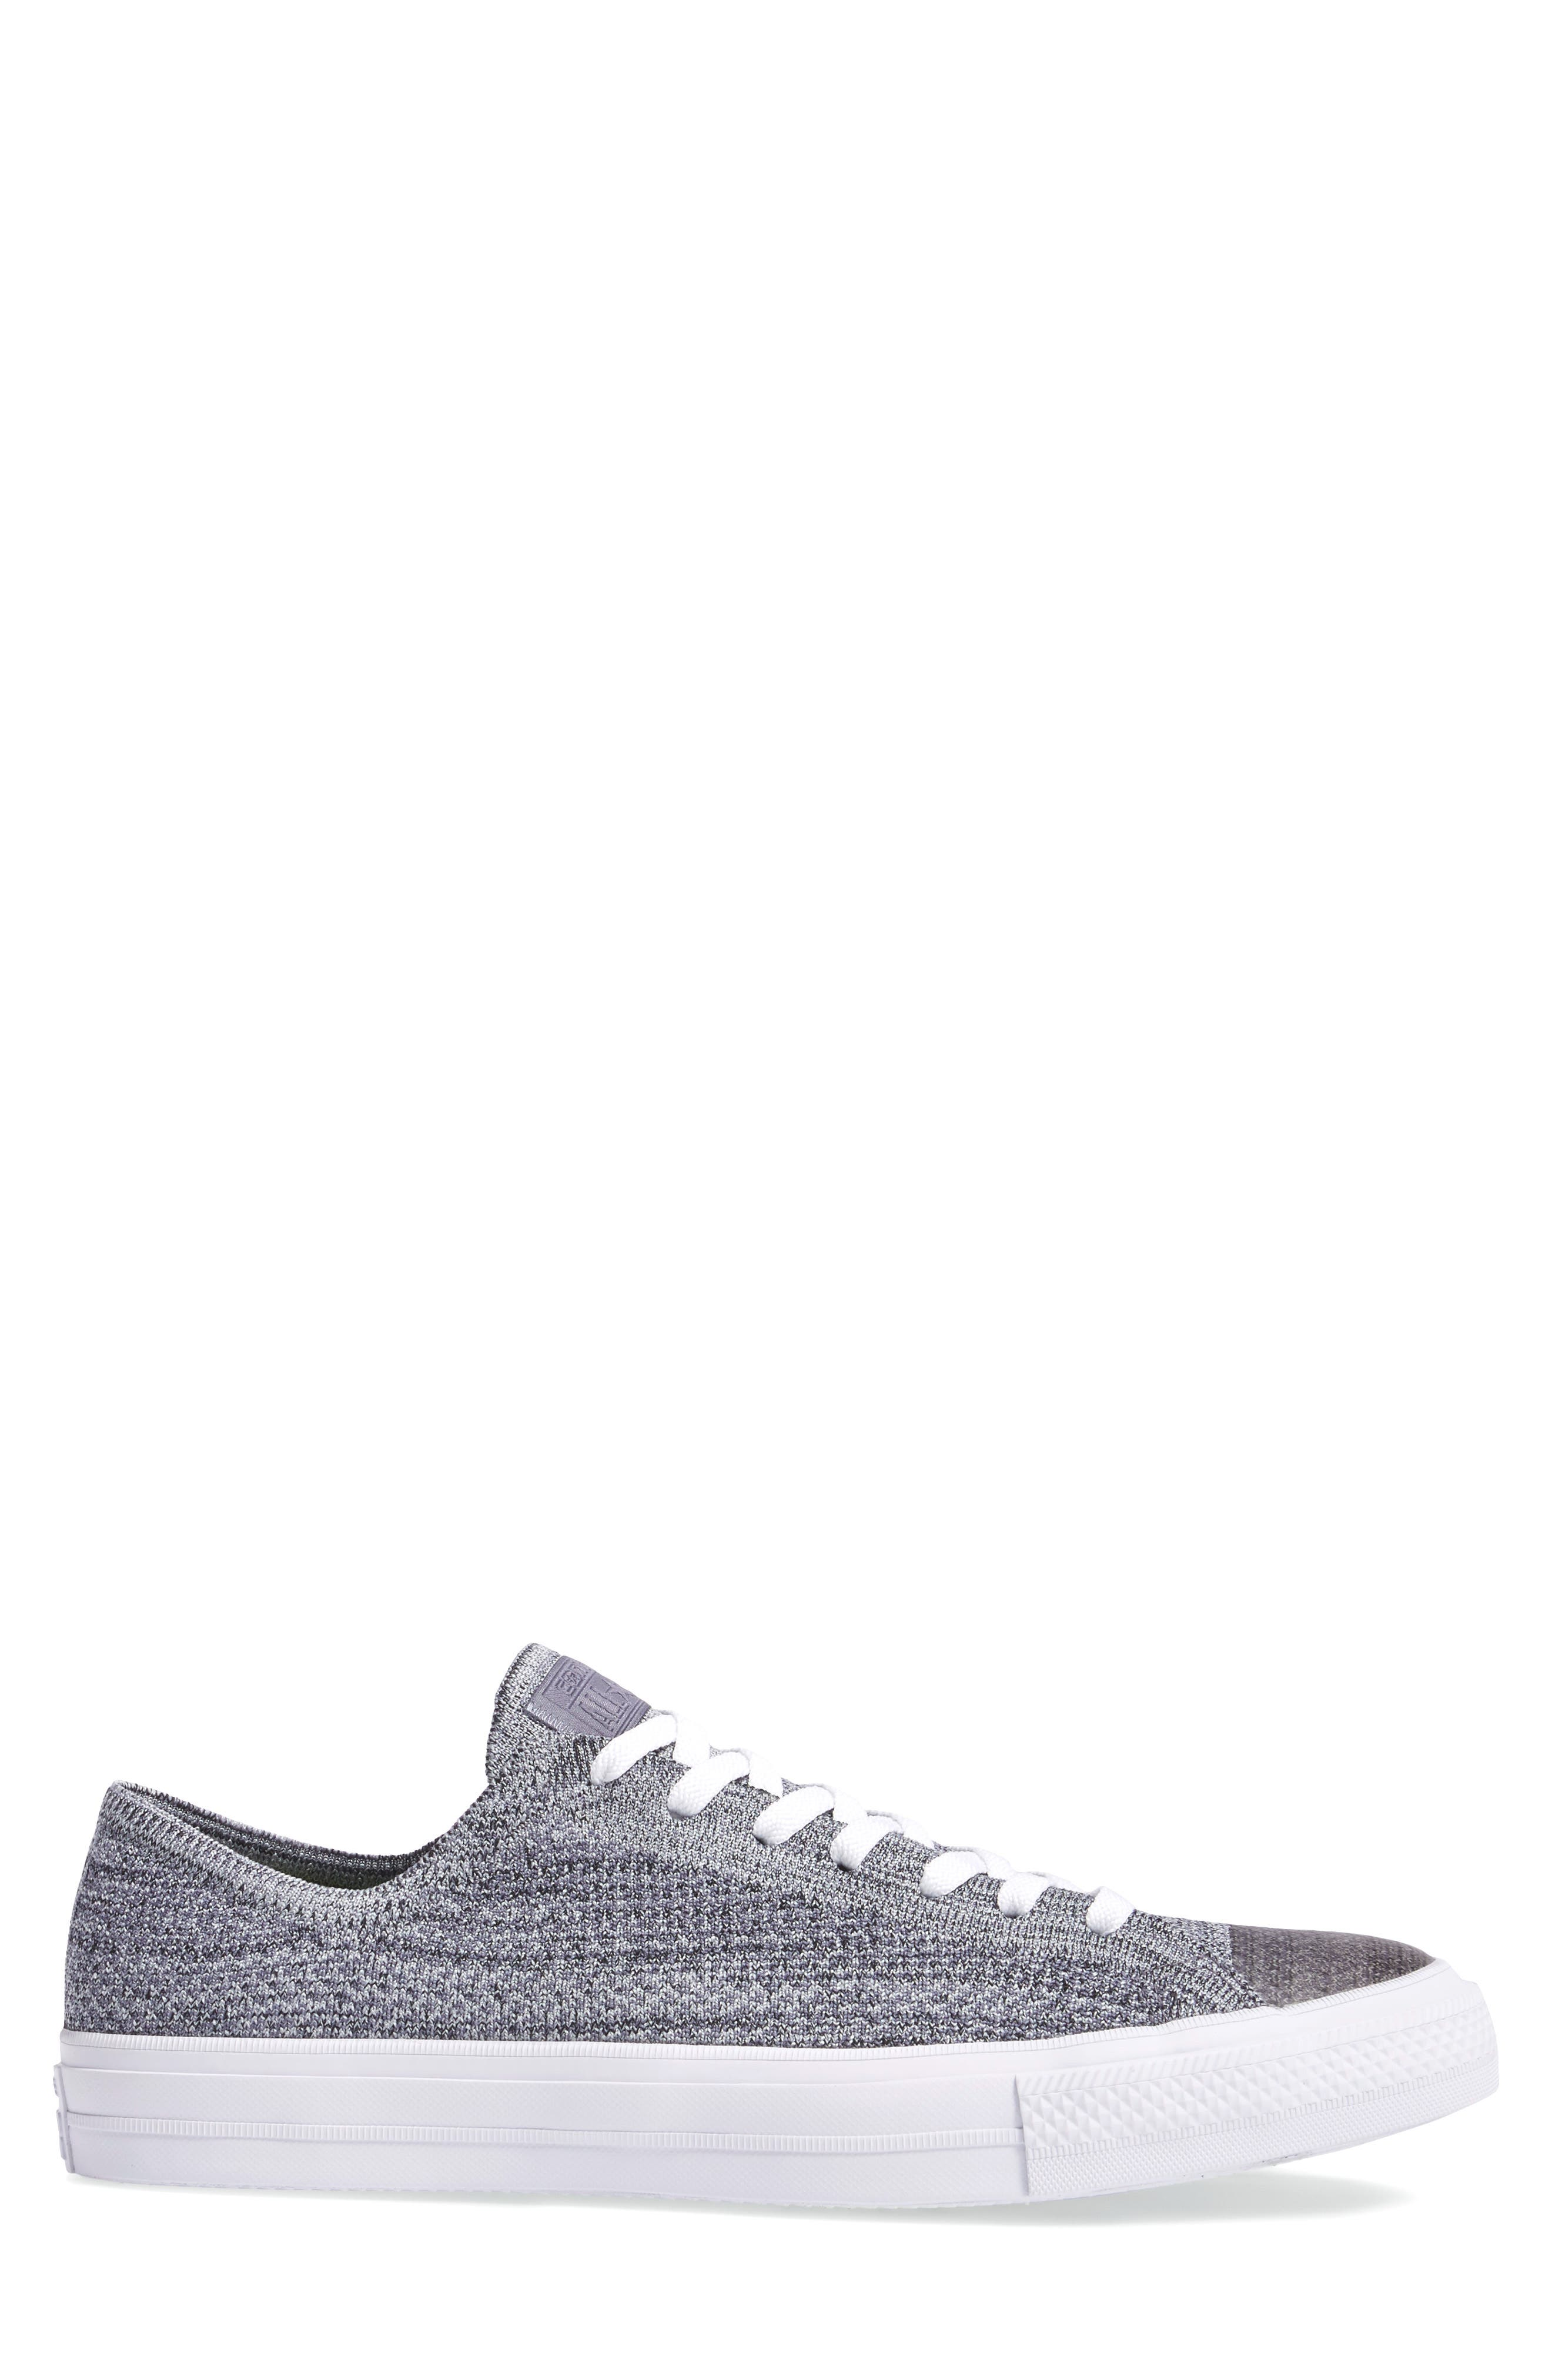 Chuck Taylor<sup>®</sup> All Star<sup>®</sup> Flyknit Sneaker,                             Alternate thumbnail 3, color,                             027